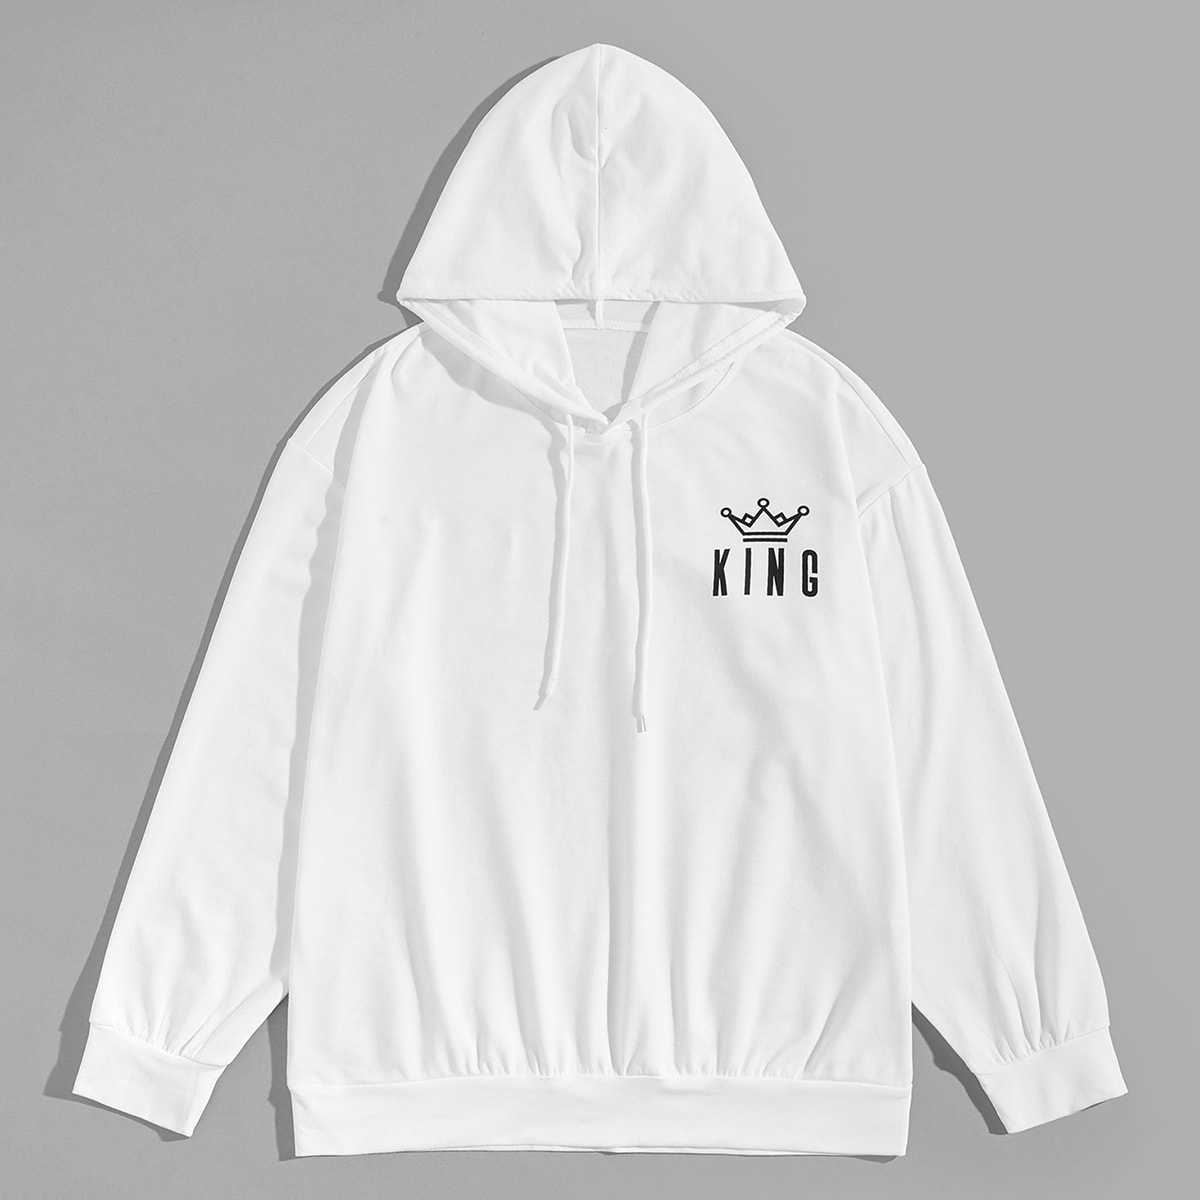 1Plus1 Guys Letter And Geo Print Hooded Sweatshirt in White by ROMWE on GOOFASH